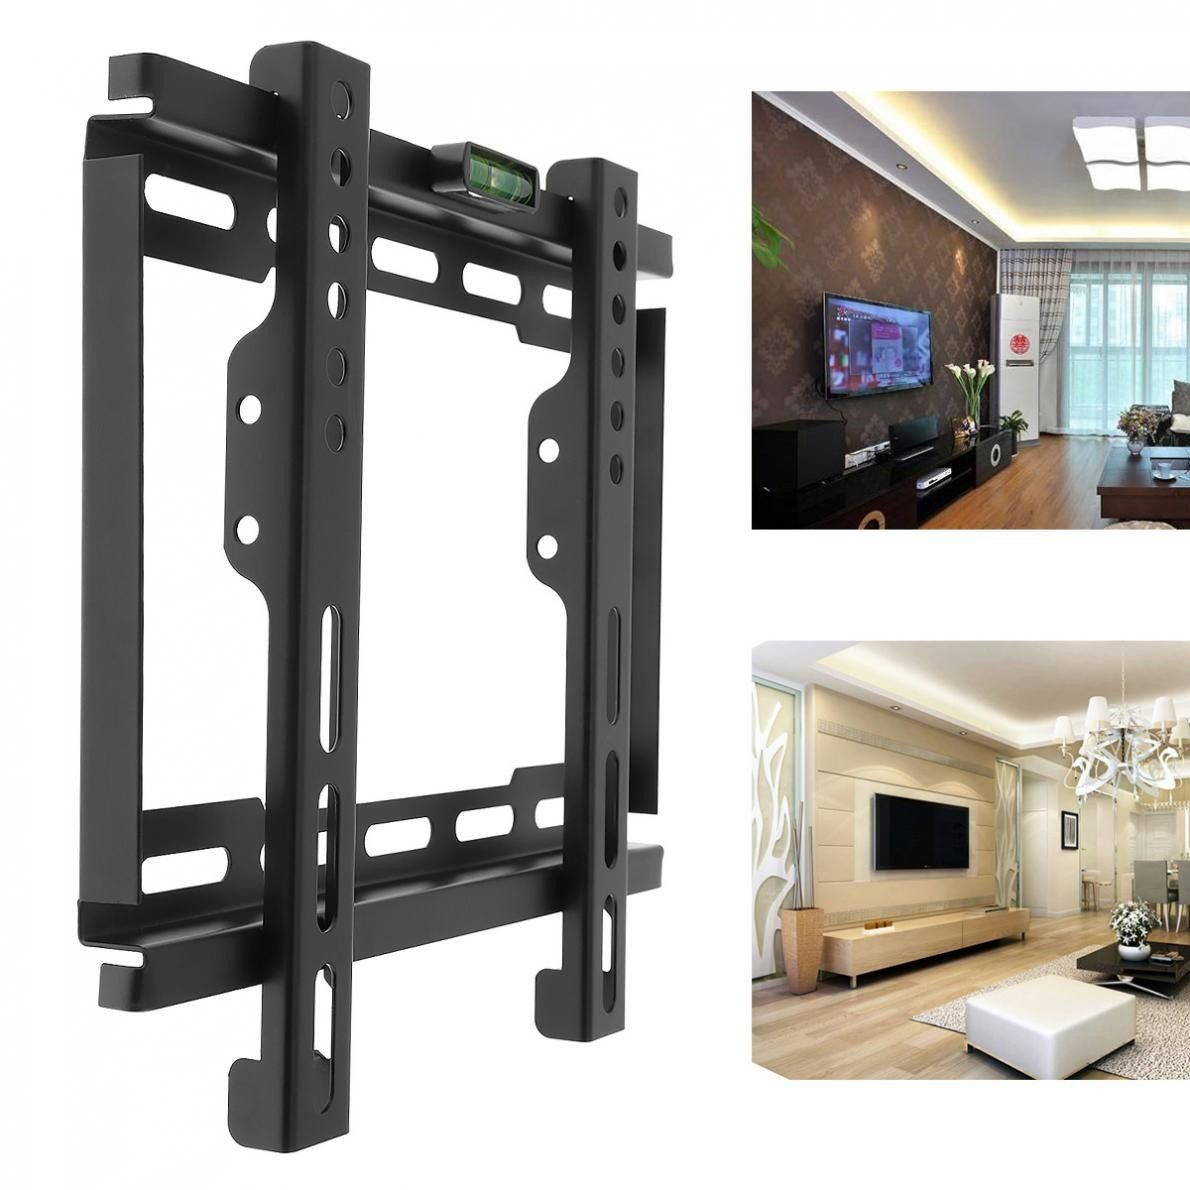 Universal Tv Wall Mount Bracket Lcd Led Frame Holder With Level Standard For Most 12 To 37 Inch H Tv Wall Mount Bracket Universal Tv Wall Mount Wall Mounted Tv